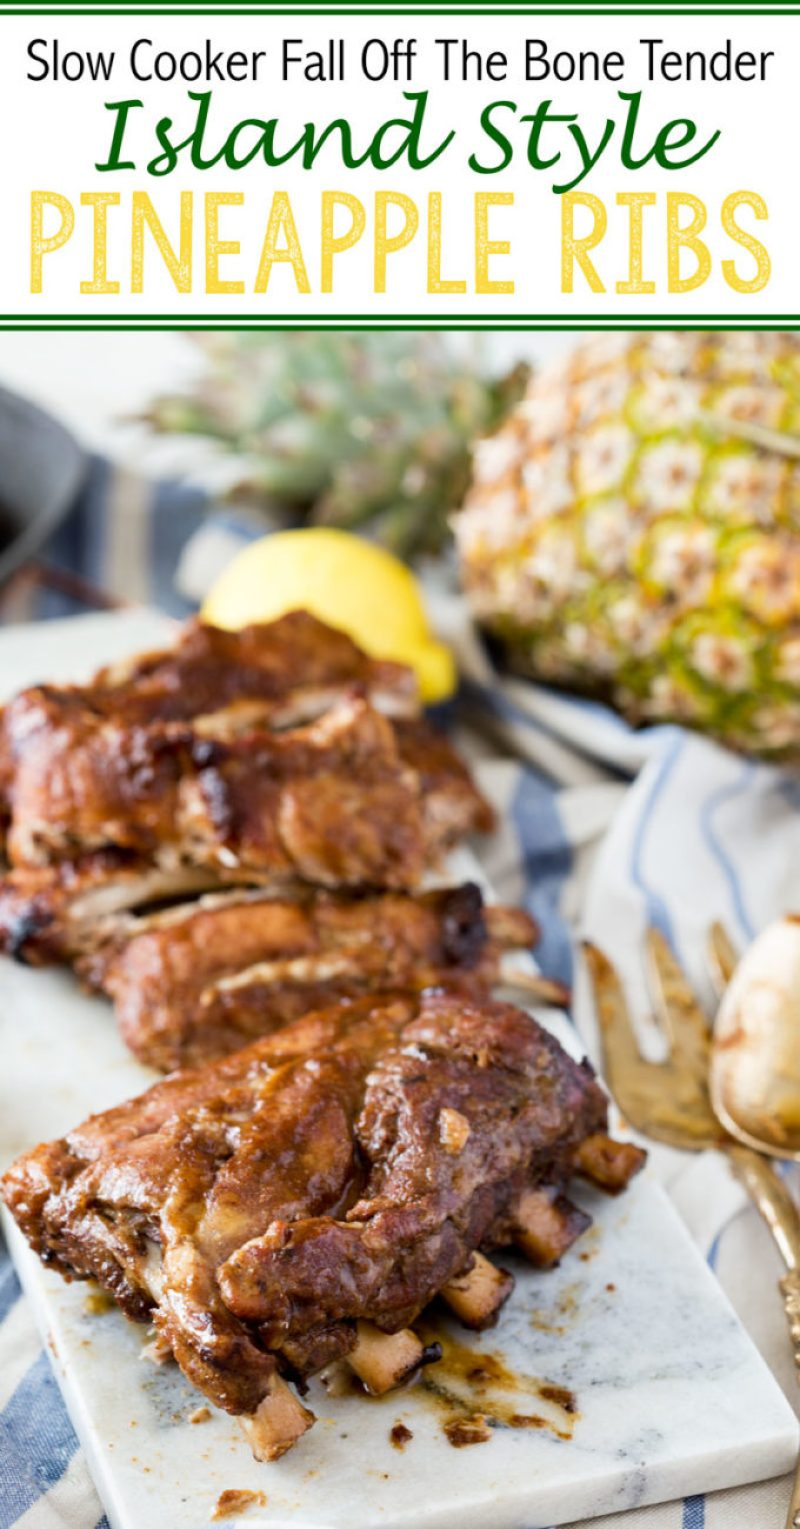 Slow Cooker Island Style Pineapple Ribs